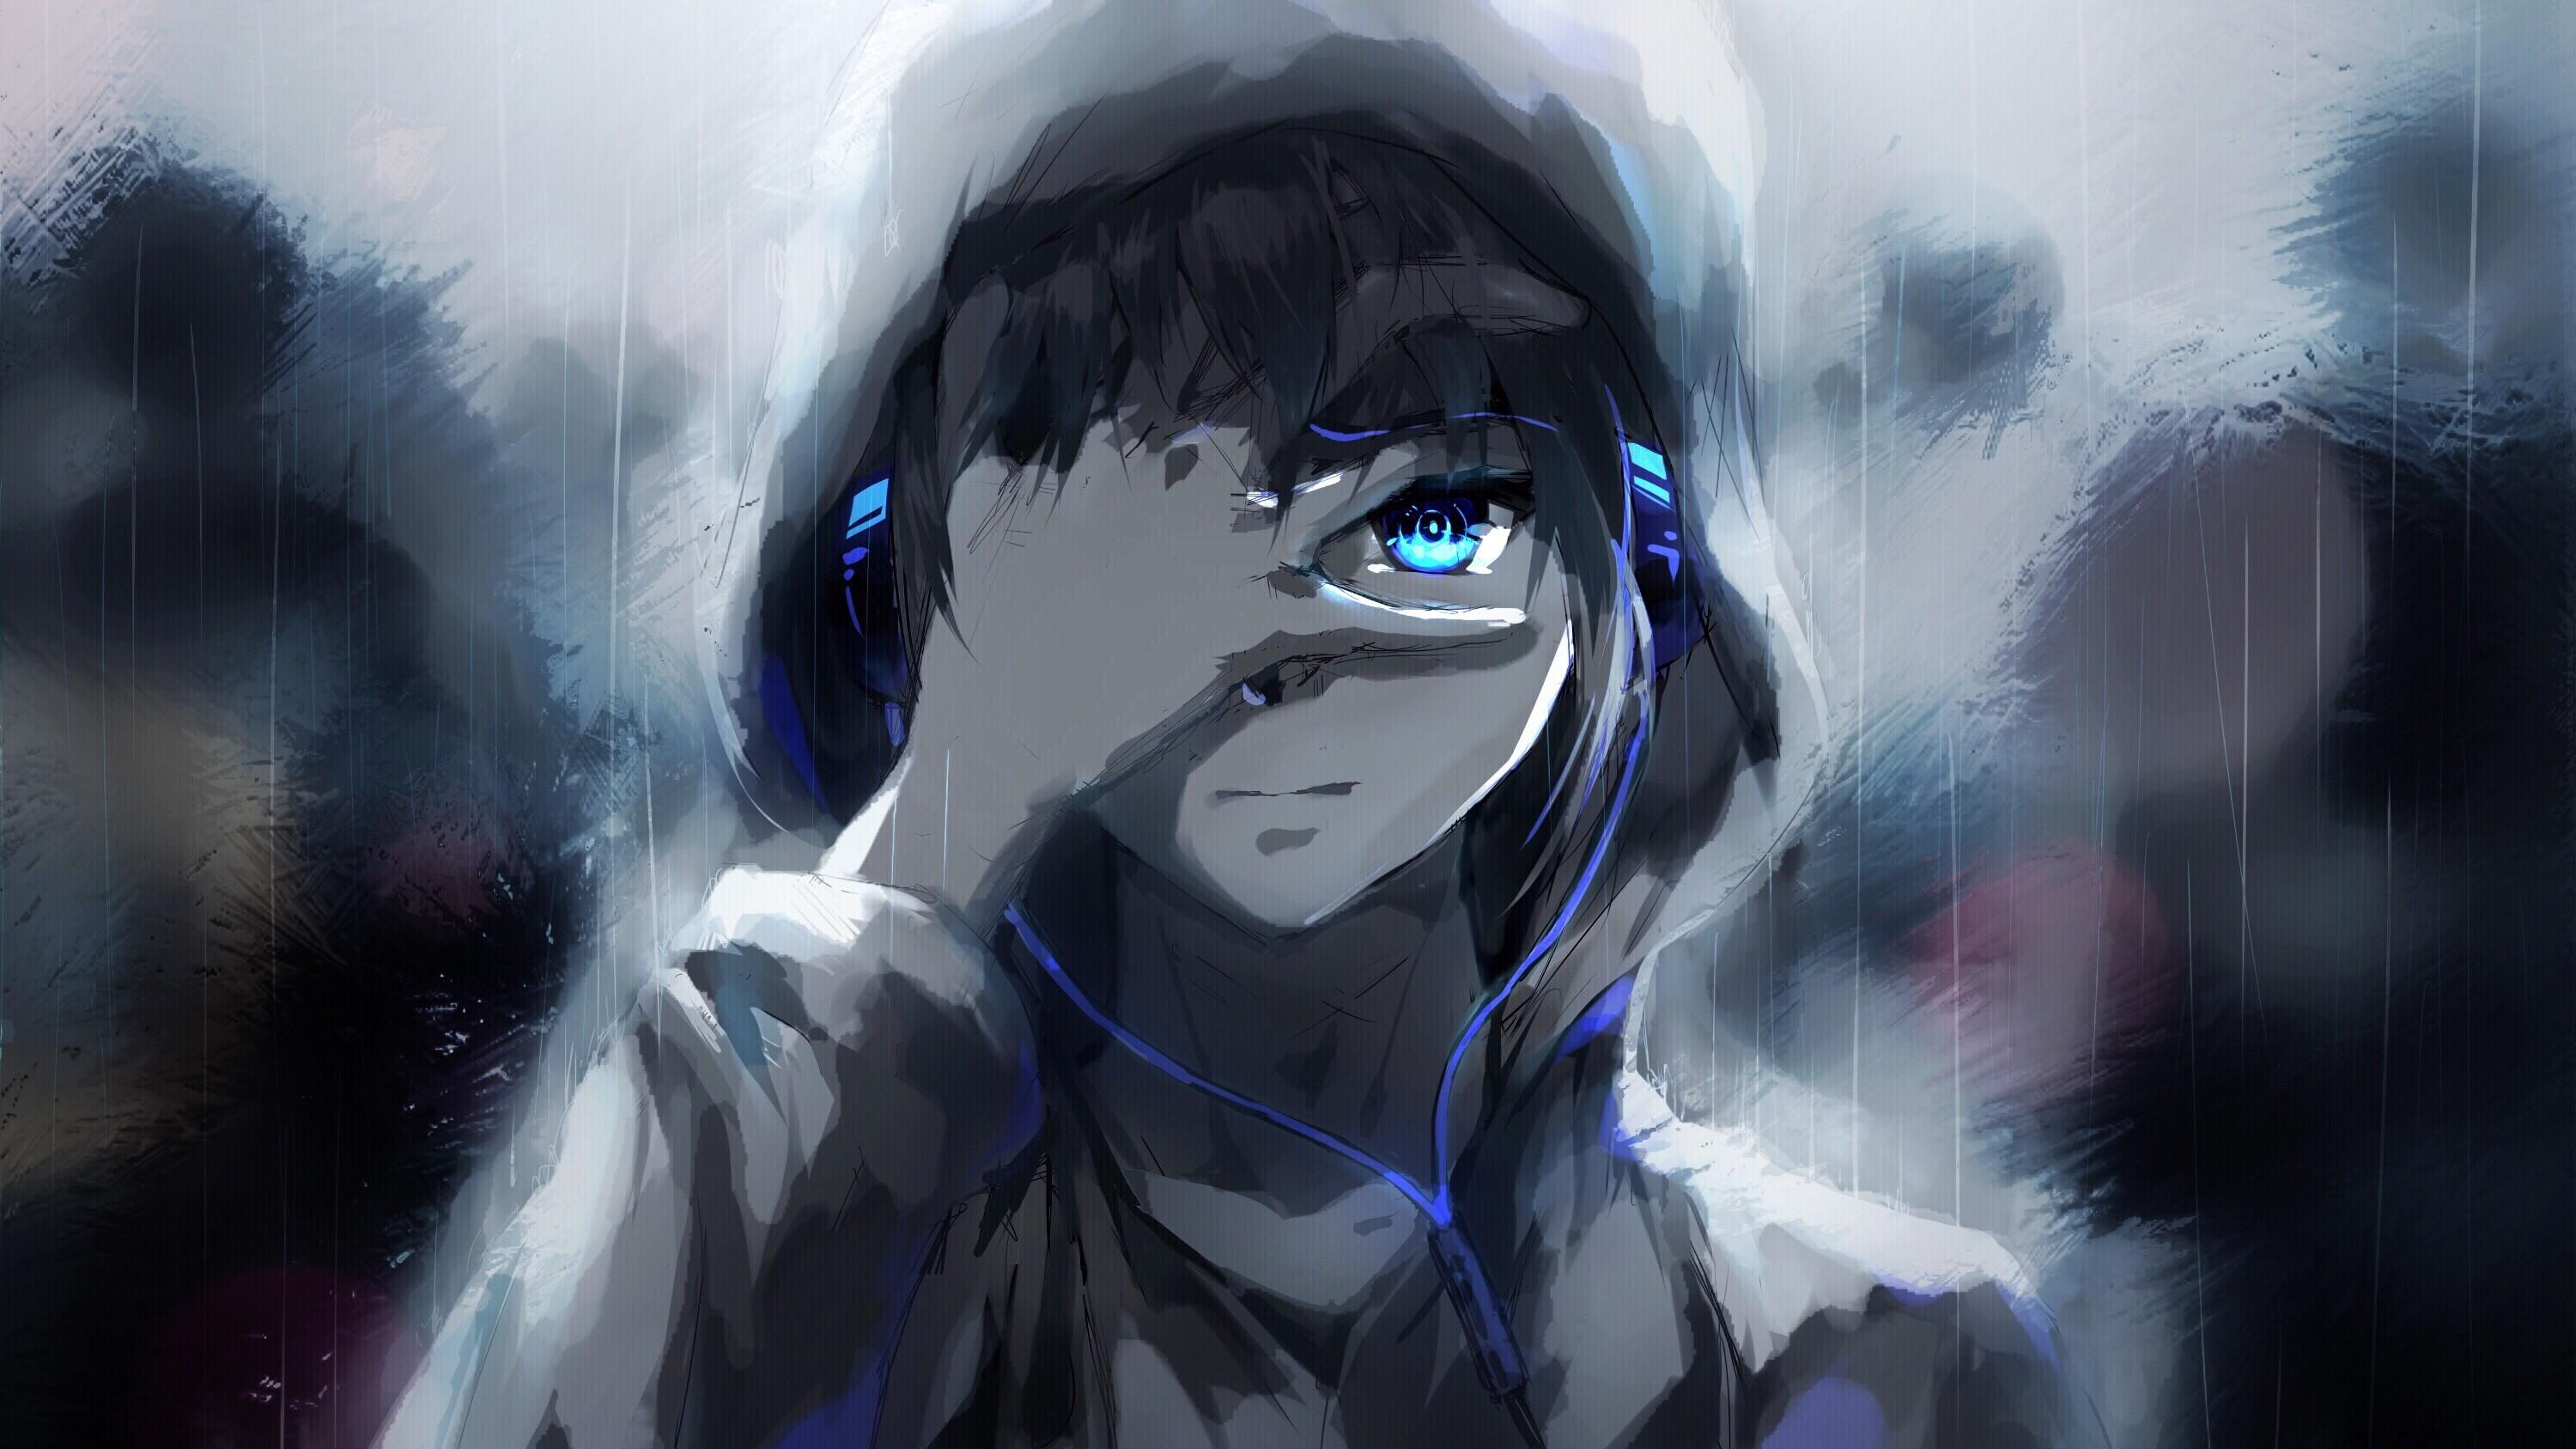 Sad Anime Boy Wallpapers Posted By John Thompson